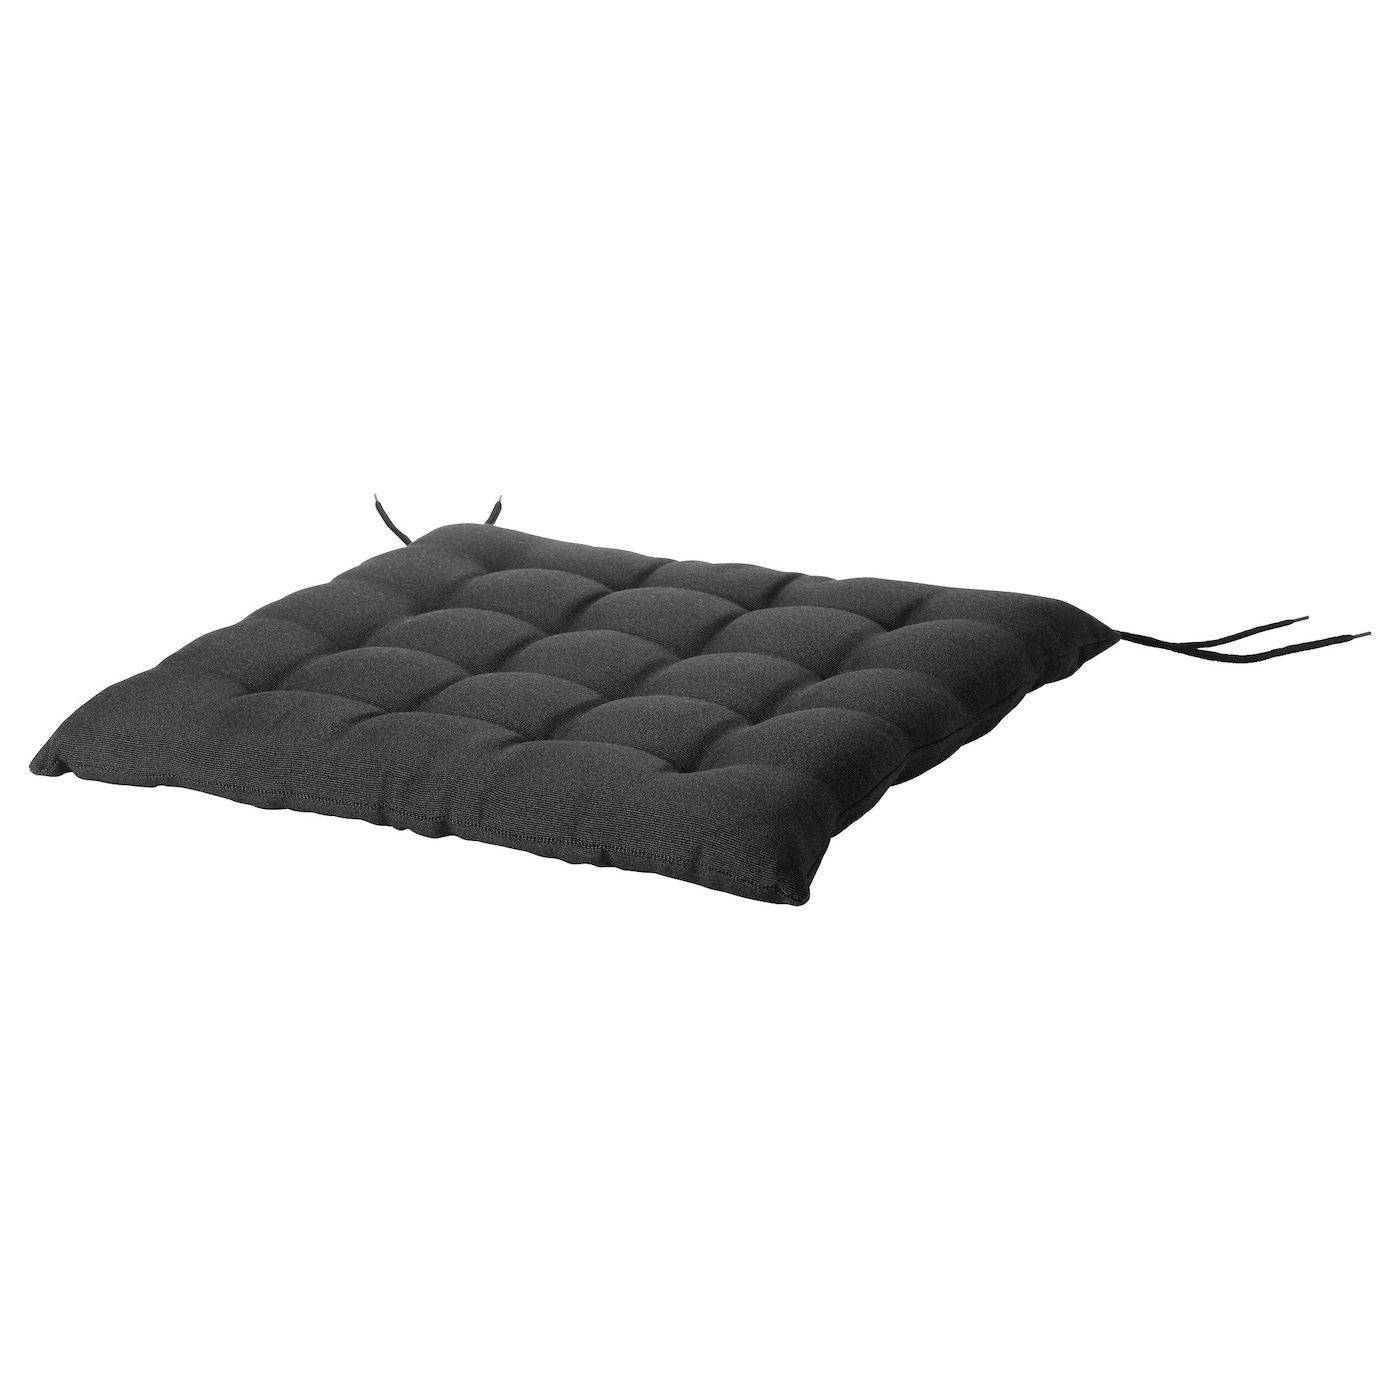 h ll coussin de chaise ext rieur noir 50 x 50 cm ikea. Black Bedroom Furniture Sets. Home Design Ideas